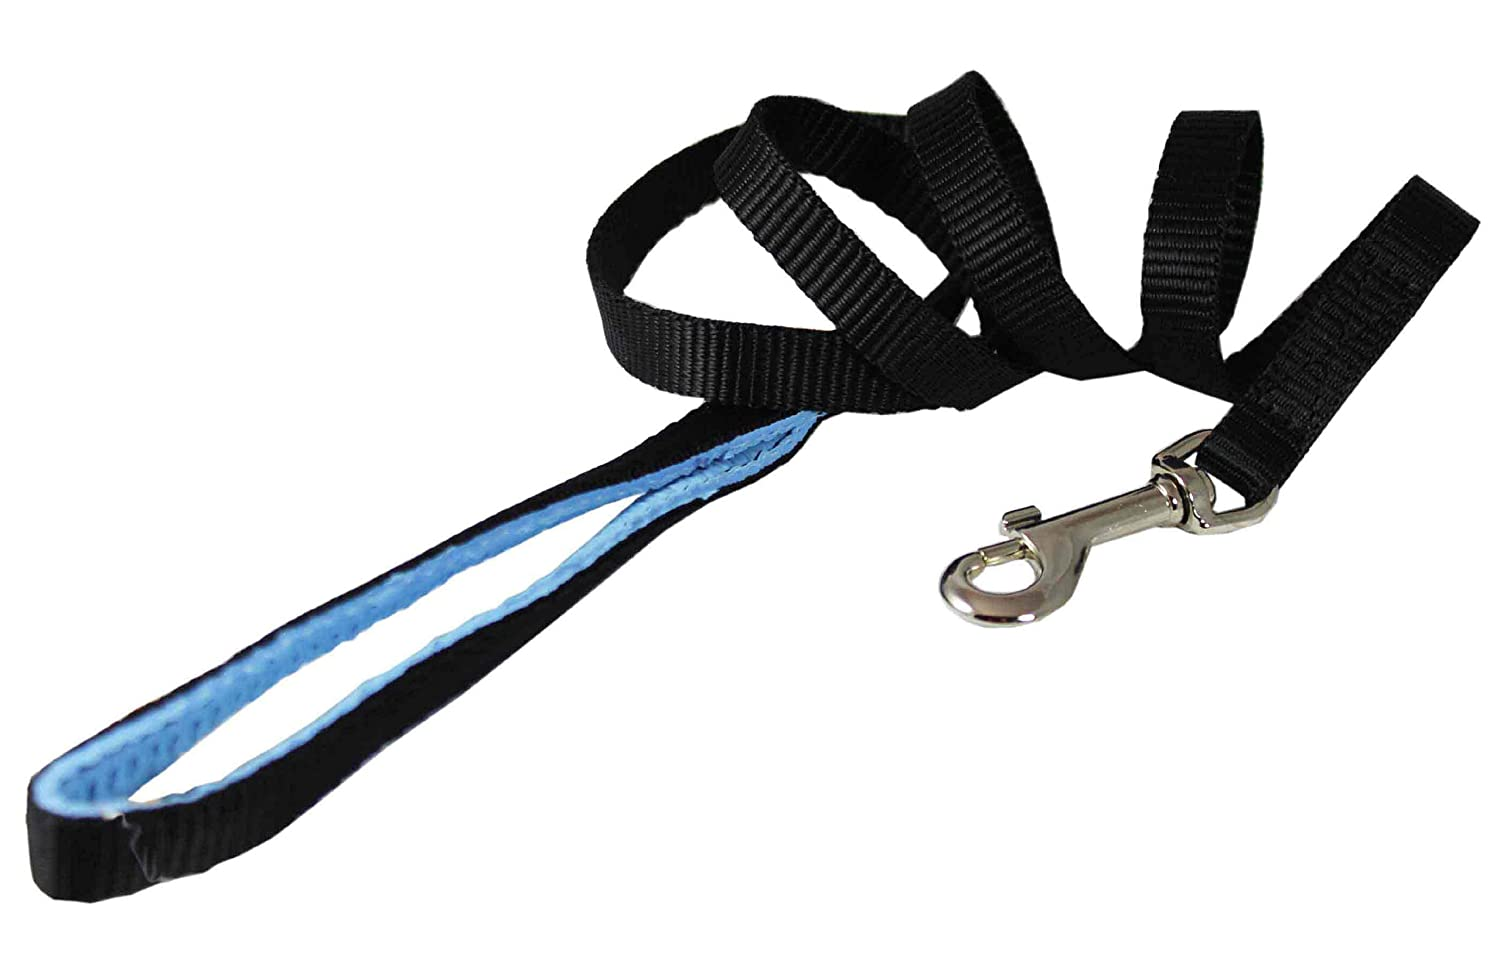 Dog Leash 1 2 Wide Nylon 4ft Length with Padded Handle nero Small by Dogs My Love